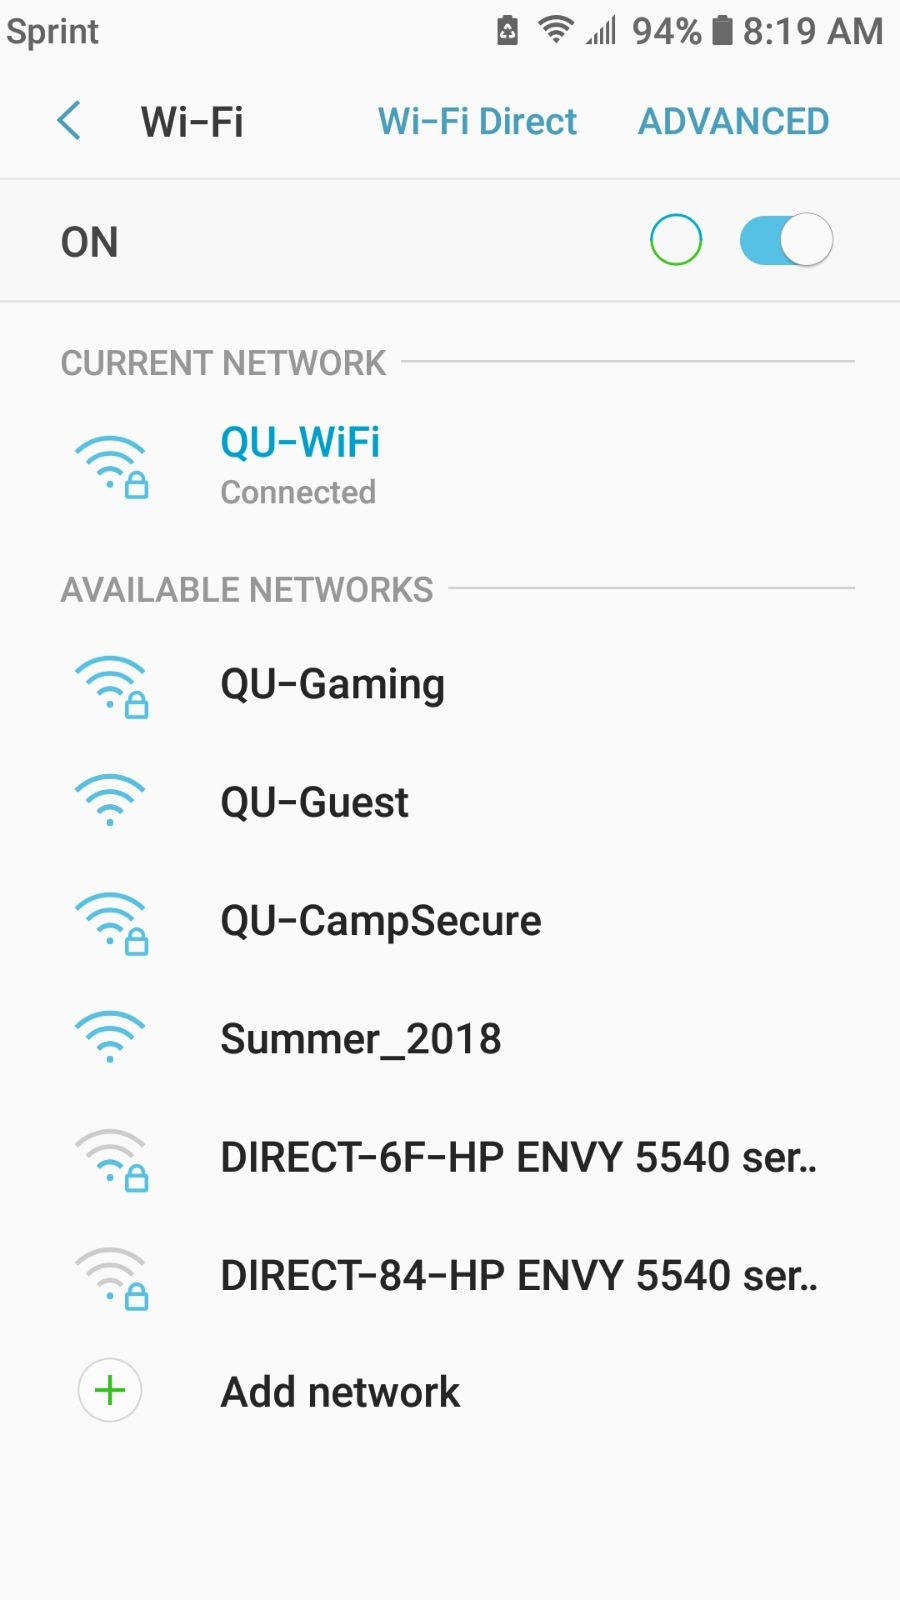 QU-WiFi_Connected.jpg